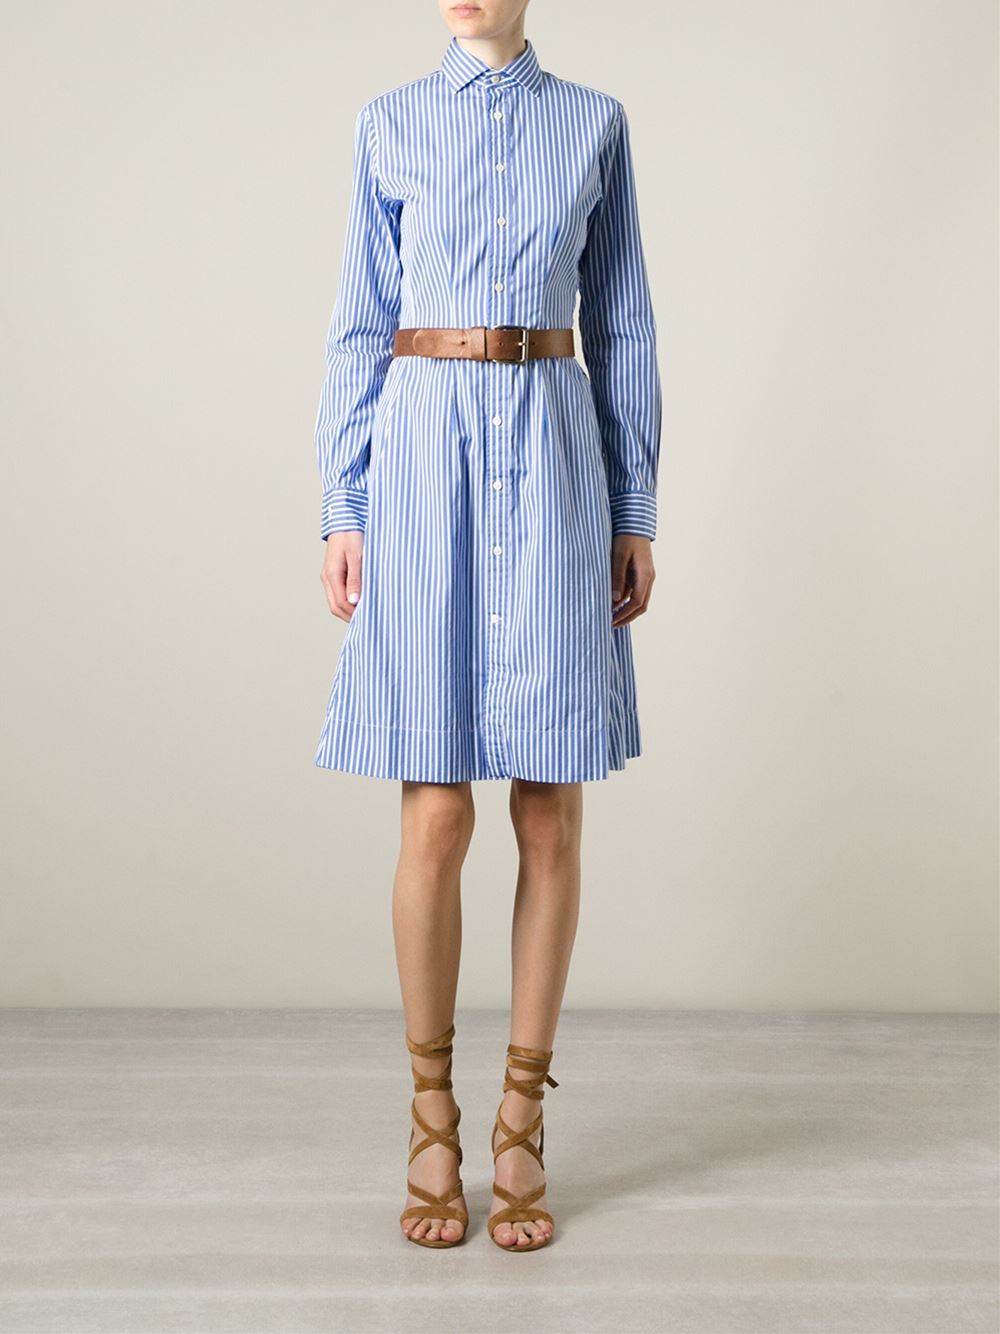 a4bf9b6600 Lyst - Polo Ralph Lauren Striped Shift Dress in Blue